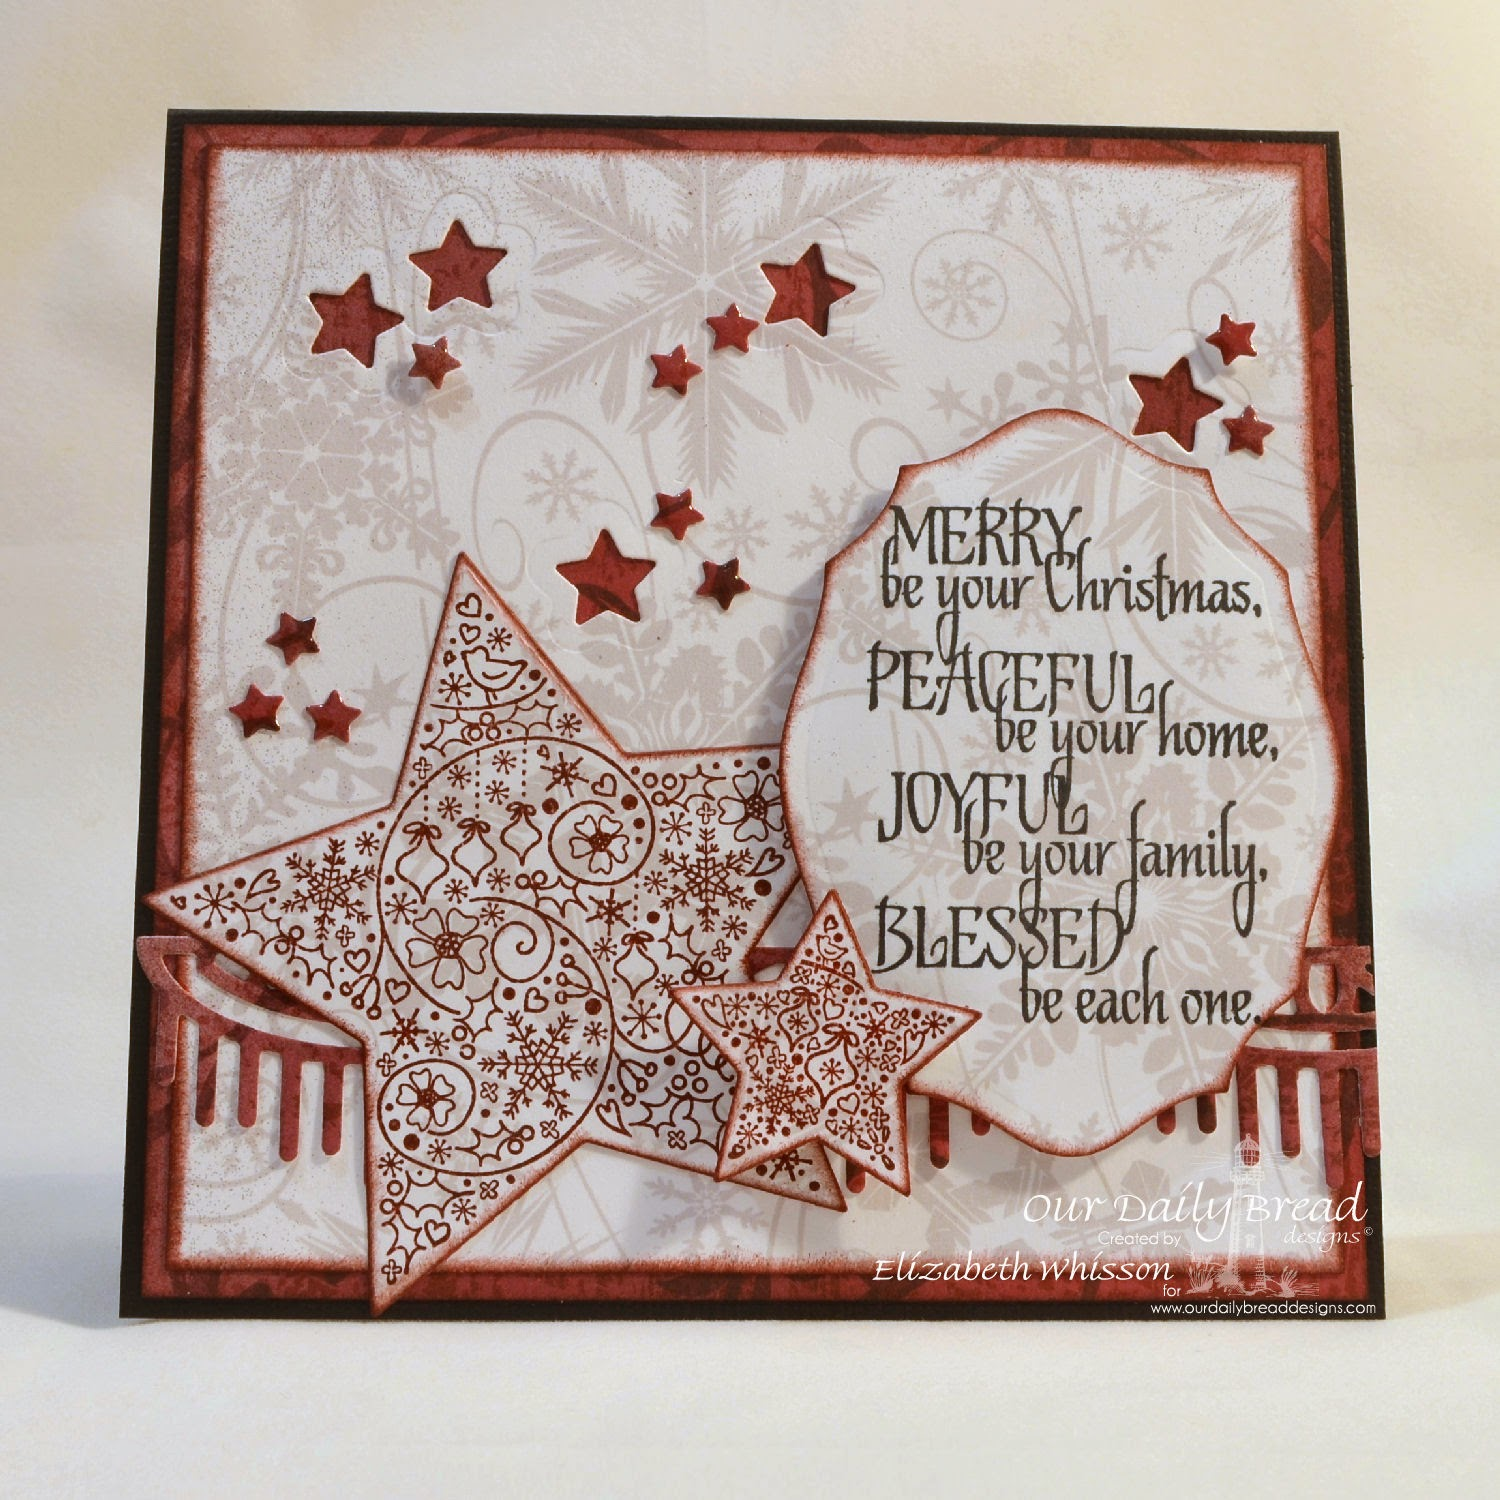 Our daily Bread Designs, Elizabeth Whisson, ODBD Sparkling Stars dies, His Birth, Christmas Card, Distress Ink Aged Mahogany, Beautiful Borders, Elegant Ovals